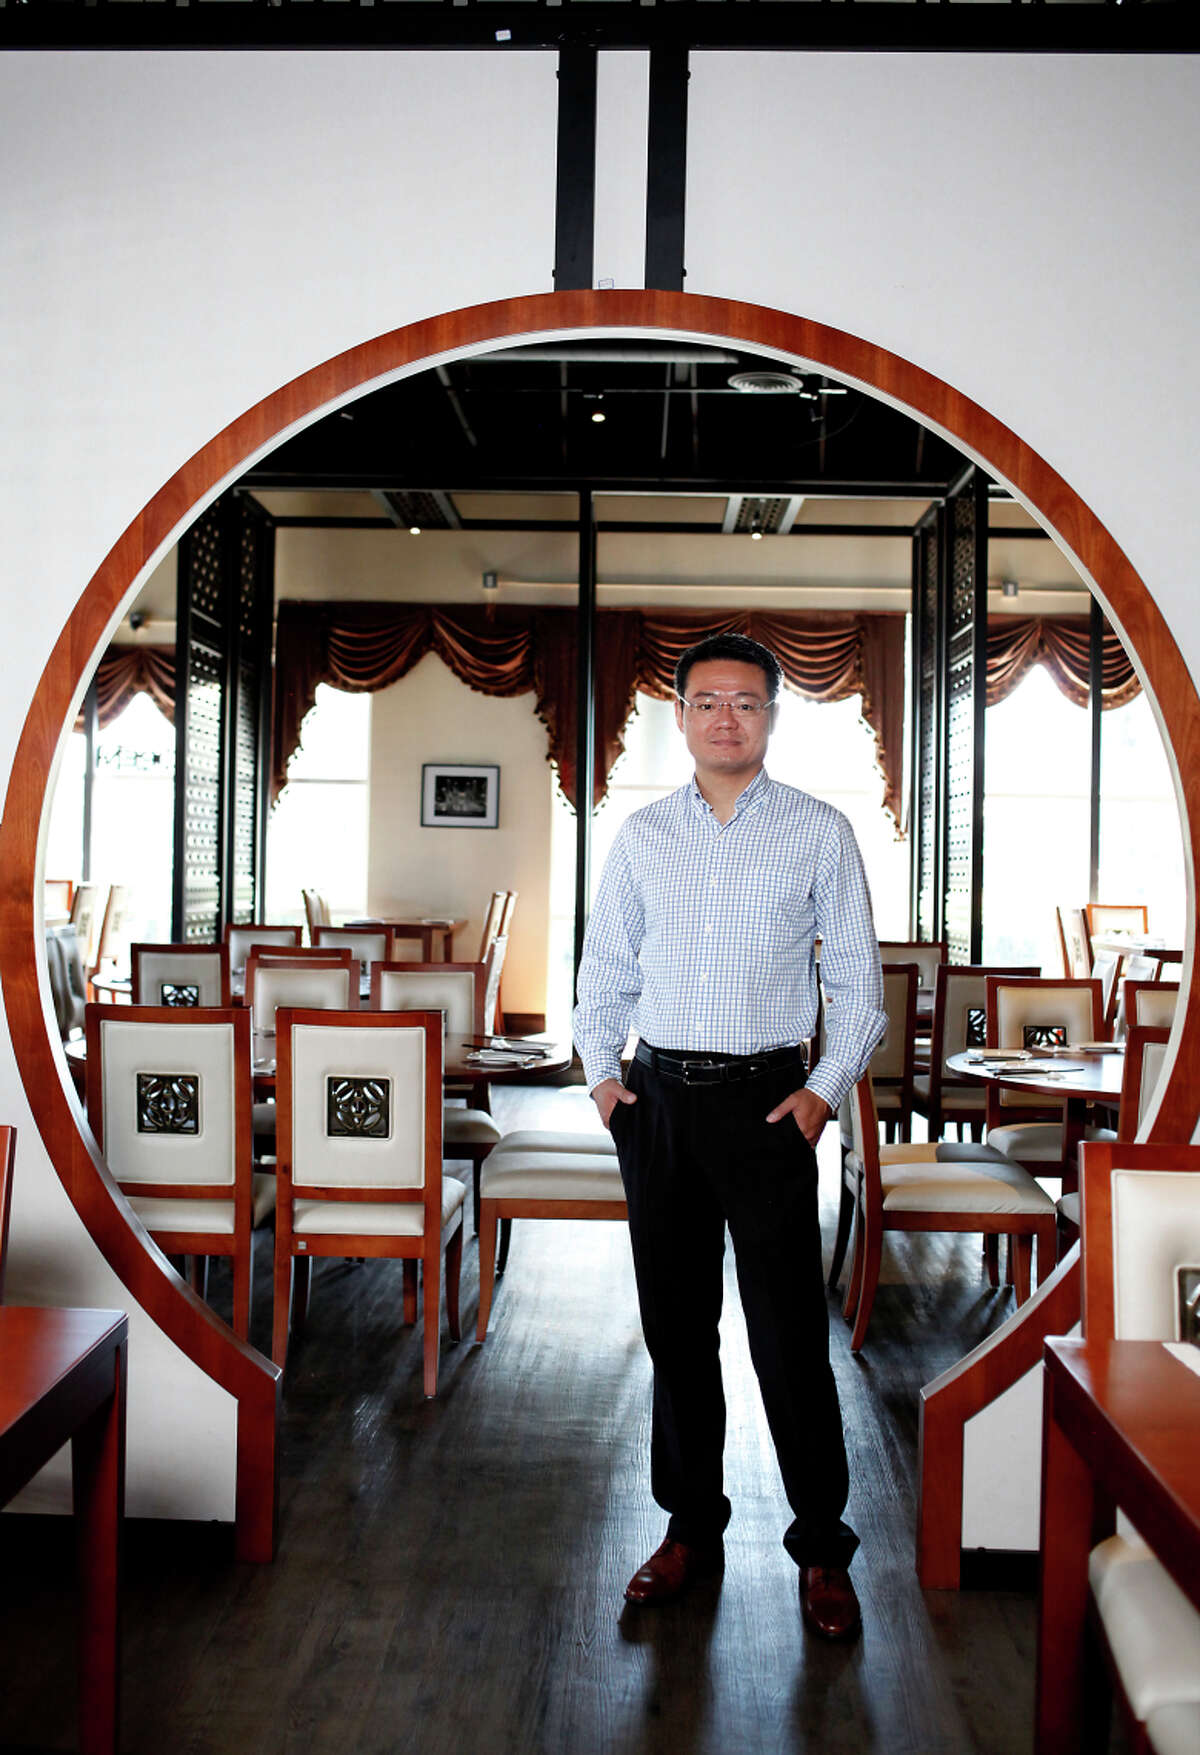 Allen Shi, the owner of the new China Lounge, in Pleasanton, Calif., on Friday, August 8, 2014.